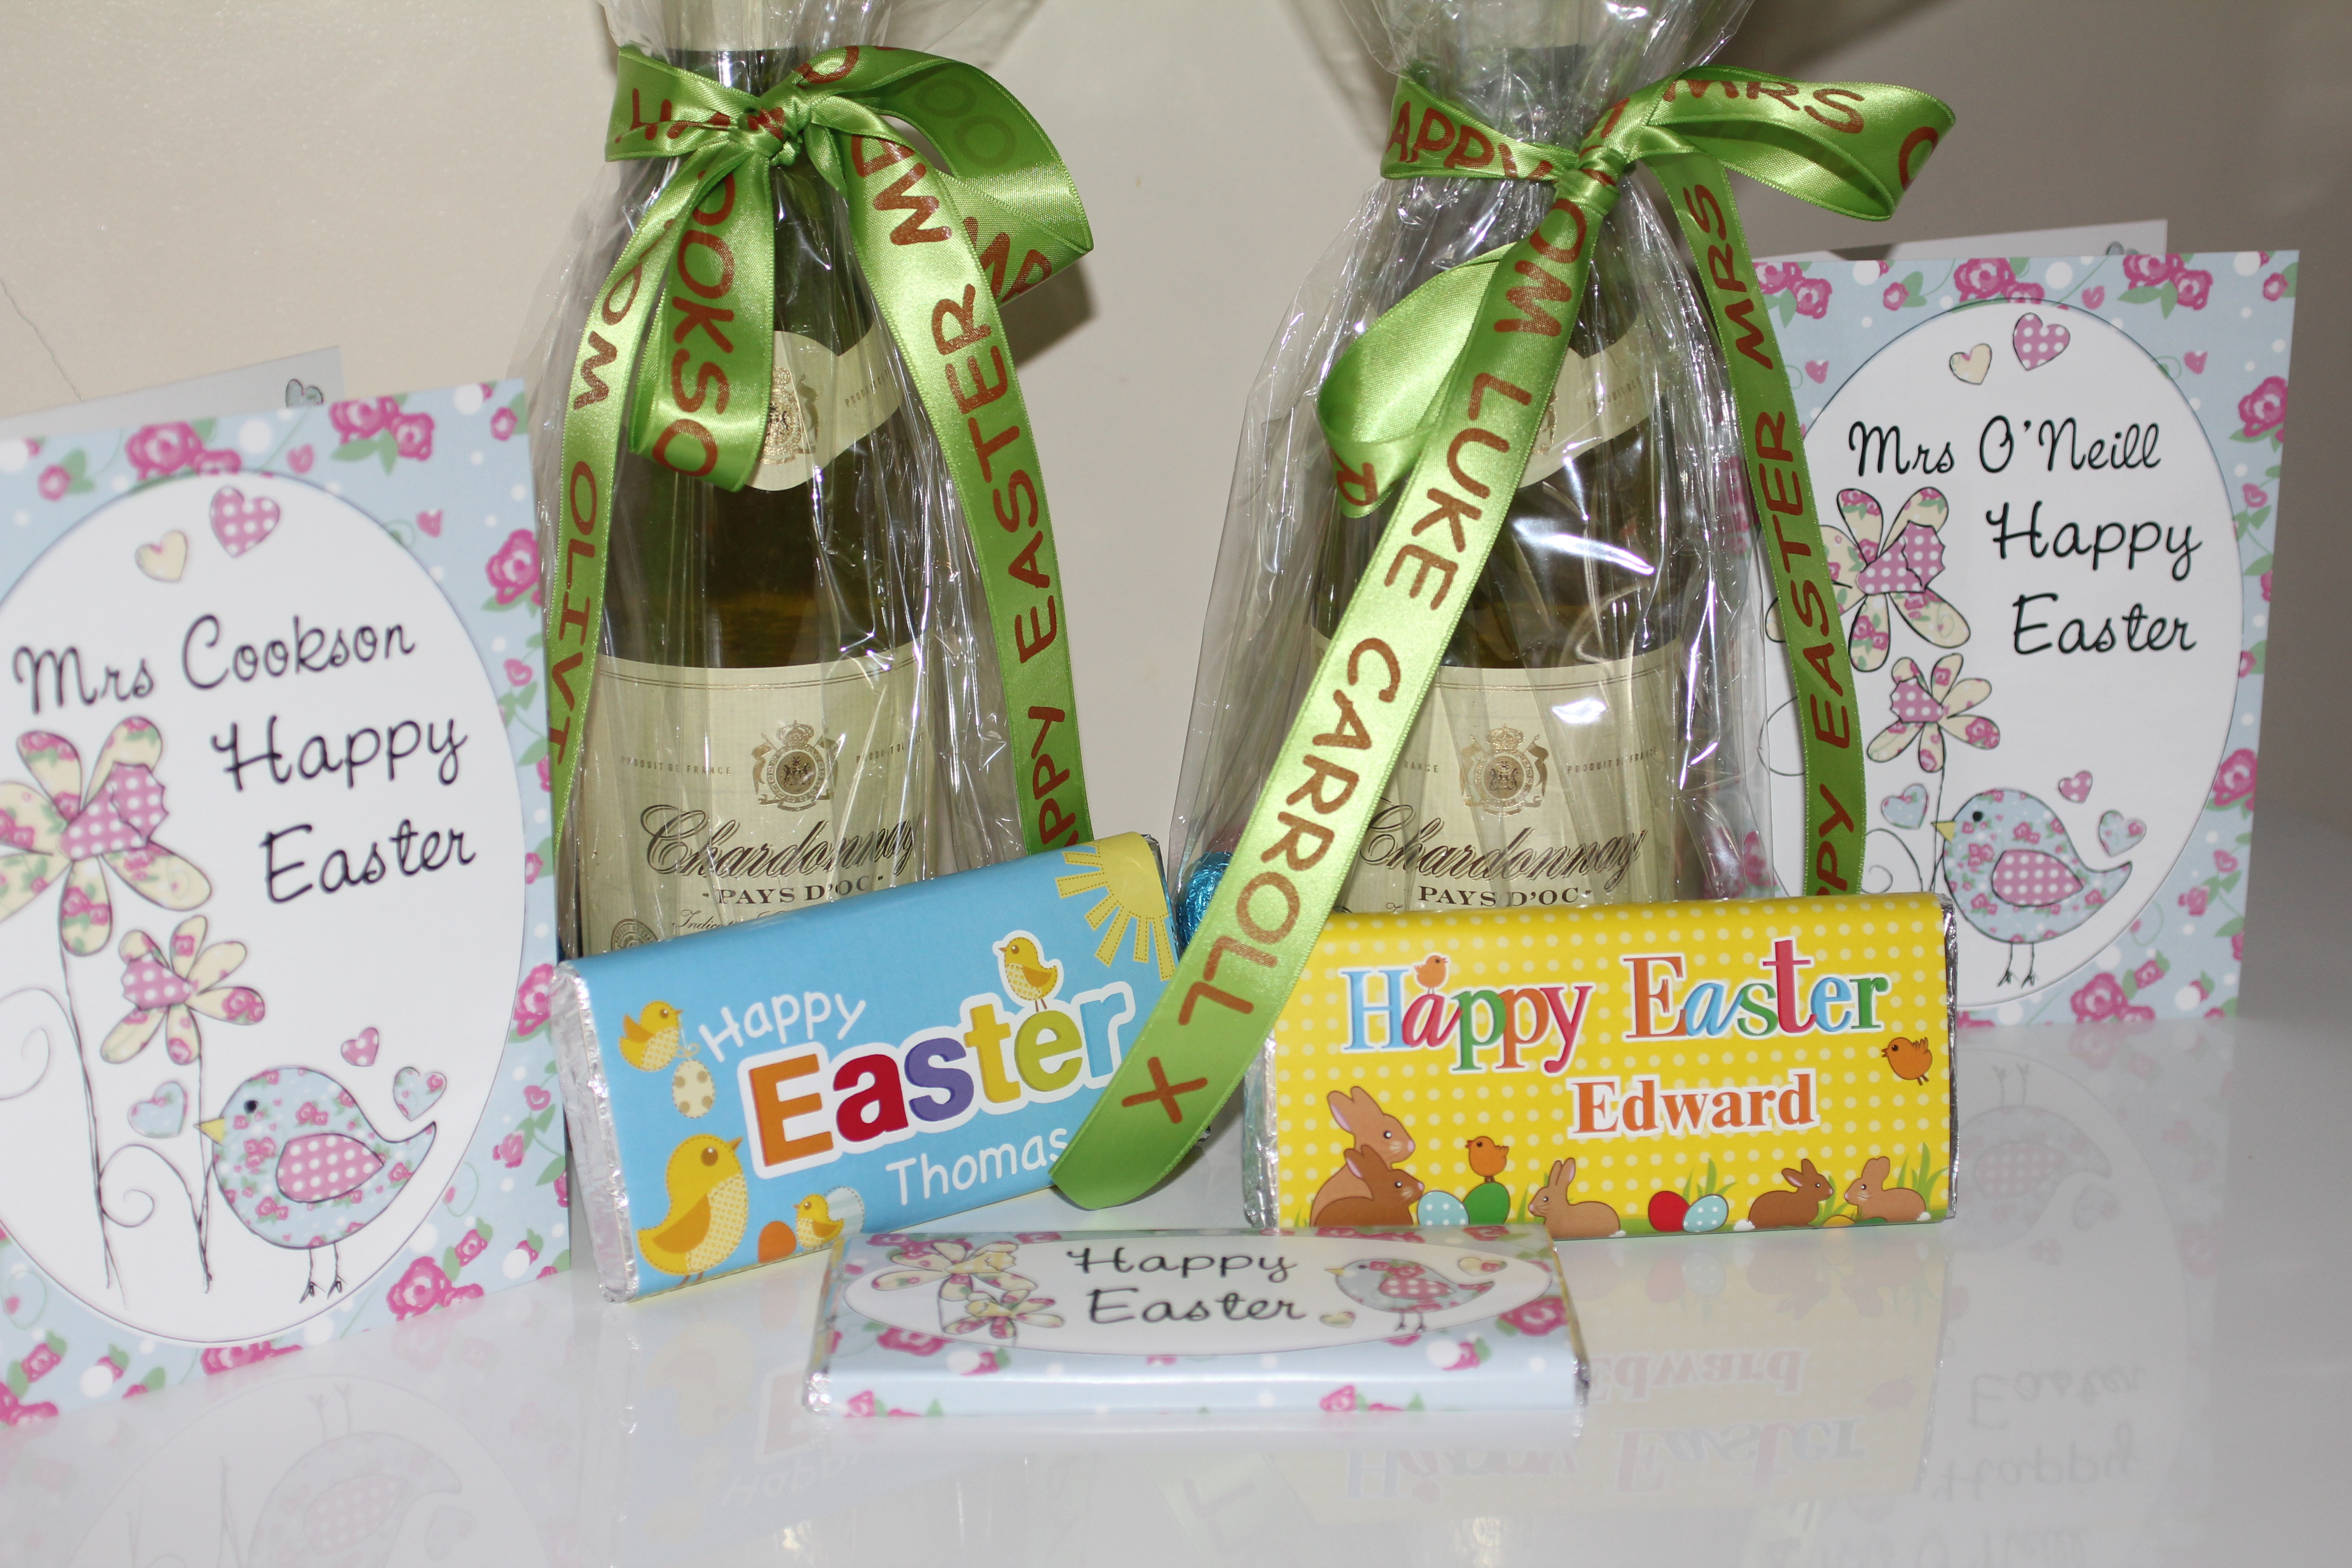 Personalised easter ribbons party sashes galore blog wish your family friends a happy easter with beautiful personalised ribbons olivia luke are very excited about giving their easter gifts to teachers negle Choice Image